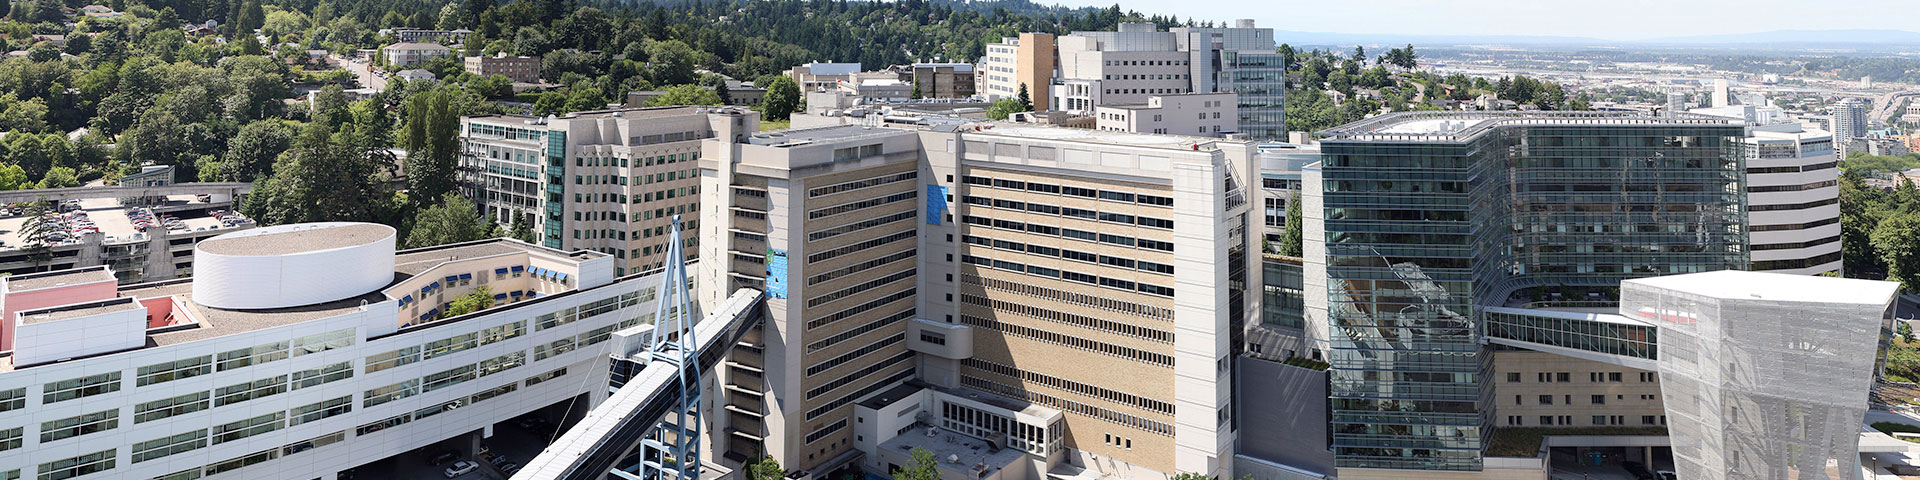 Picture of OHSU skybridge and main hospital.